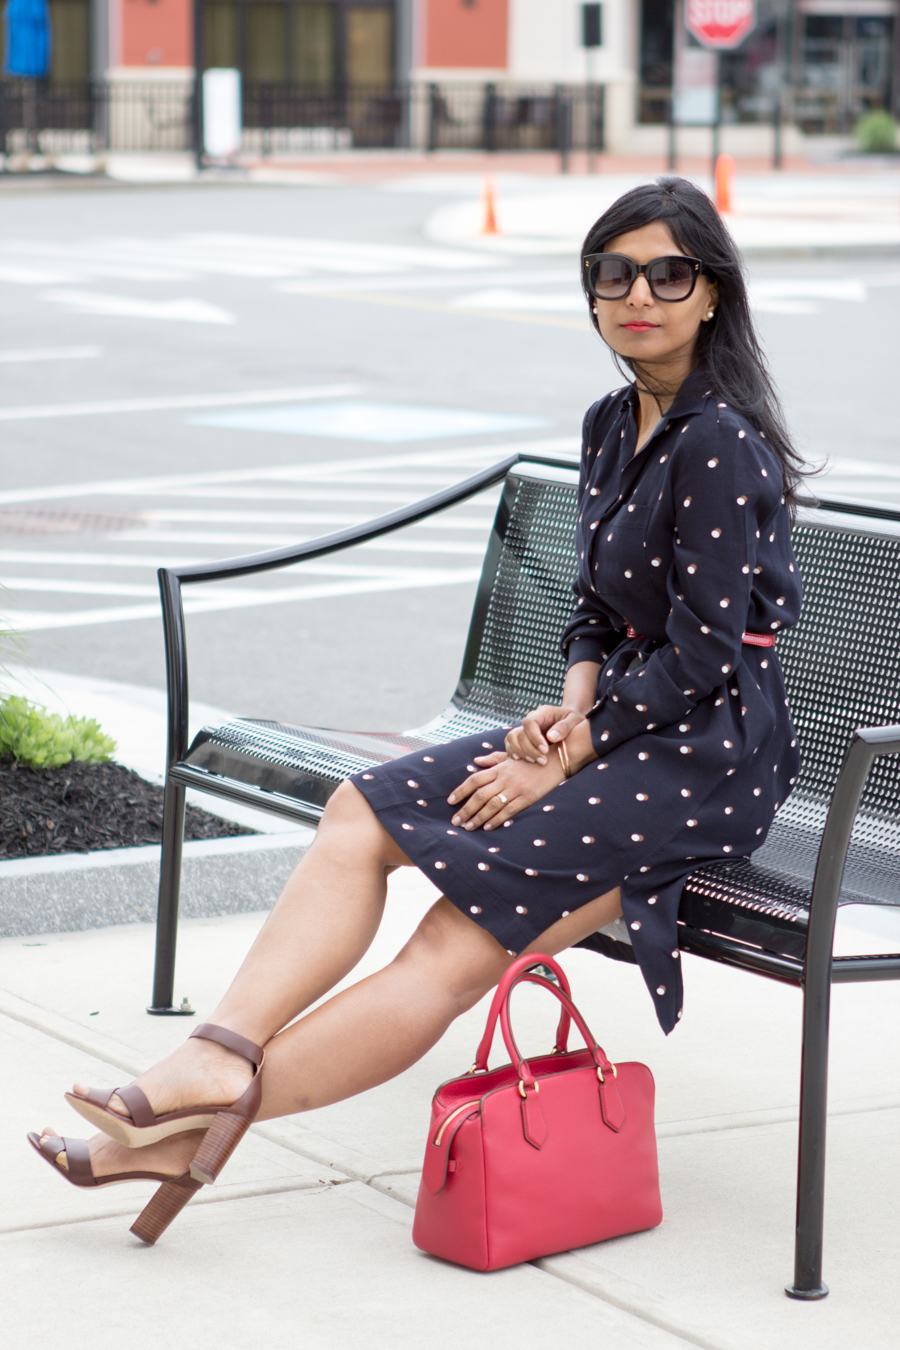 office style, work style, career woman, dress for success, corporate fashion, 9 to 5 style, office style, work wear, women's wear, petite fashion, ann taylor, block heels, brown sandals, satchel, red satchel, bright accents, off to work